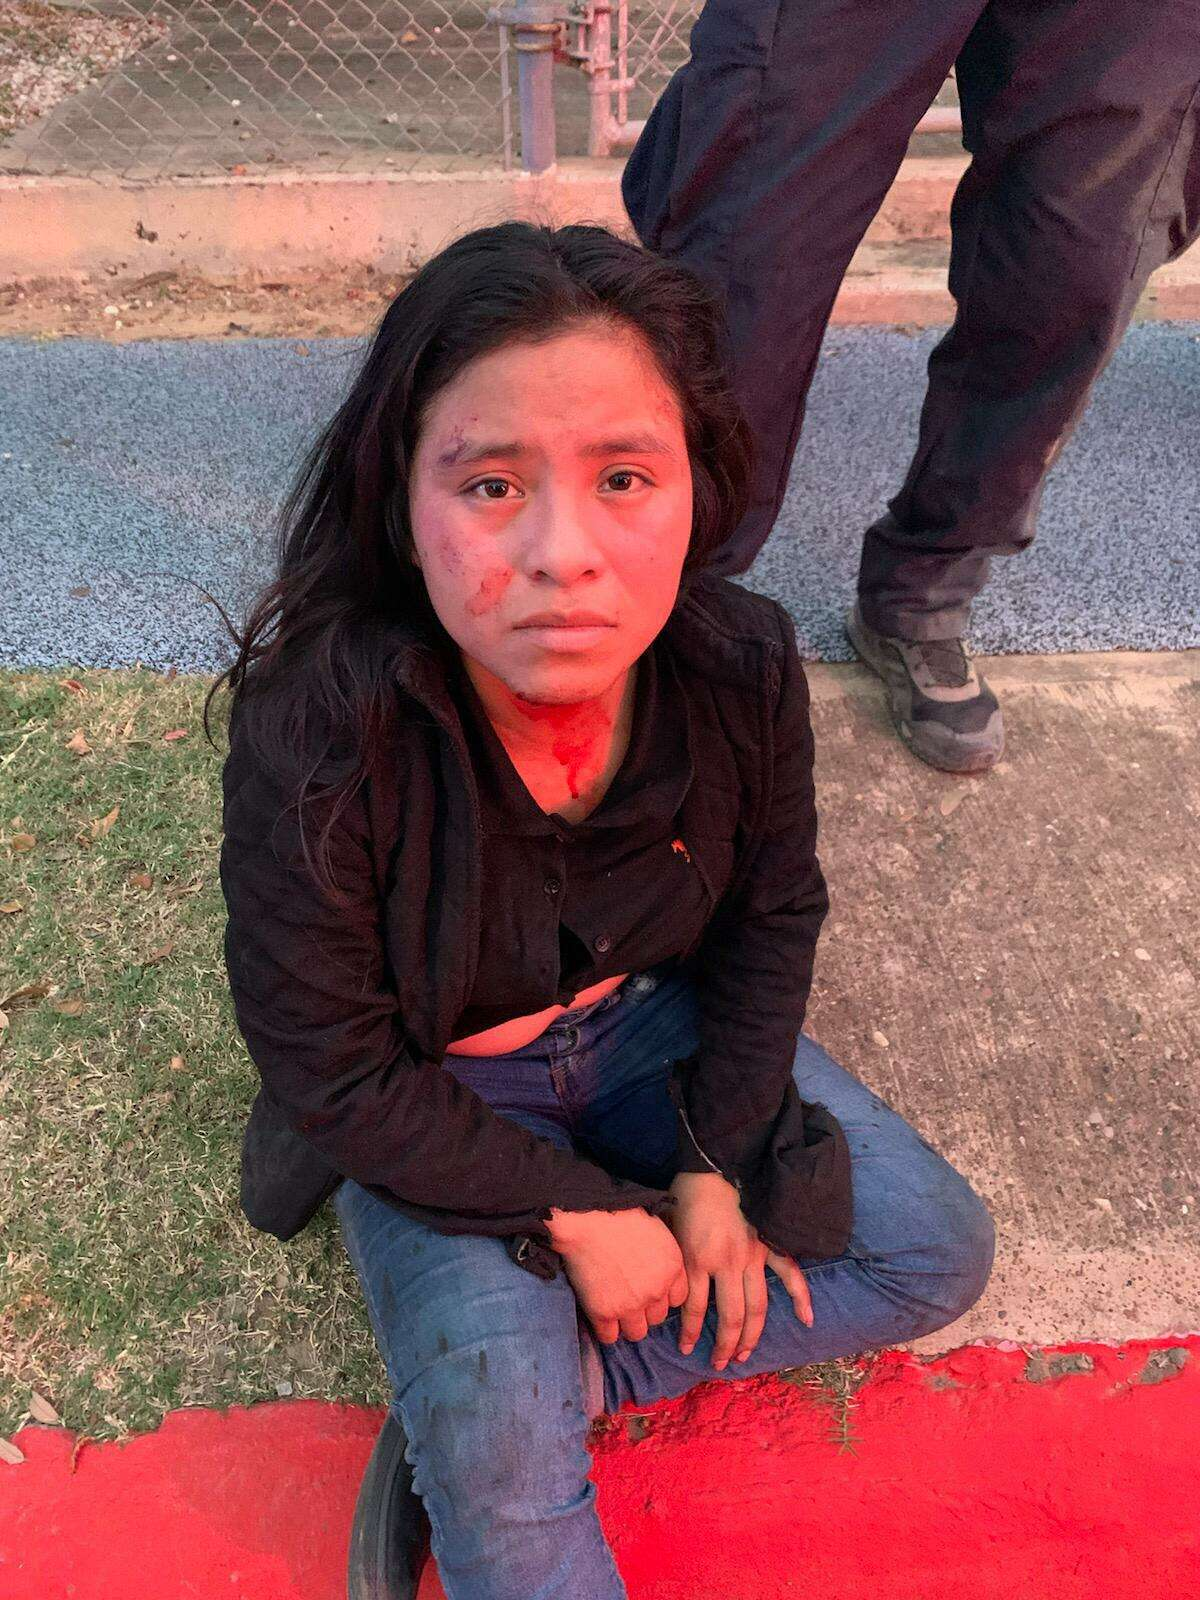 Authorities said this woman bailed out of a vehicle during a pursuit with a suspected human smuggler. She was taken to Laredo Medical Center for further treatment. She was determined to be an immigrant who was illegally present in the country.